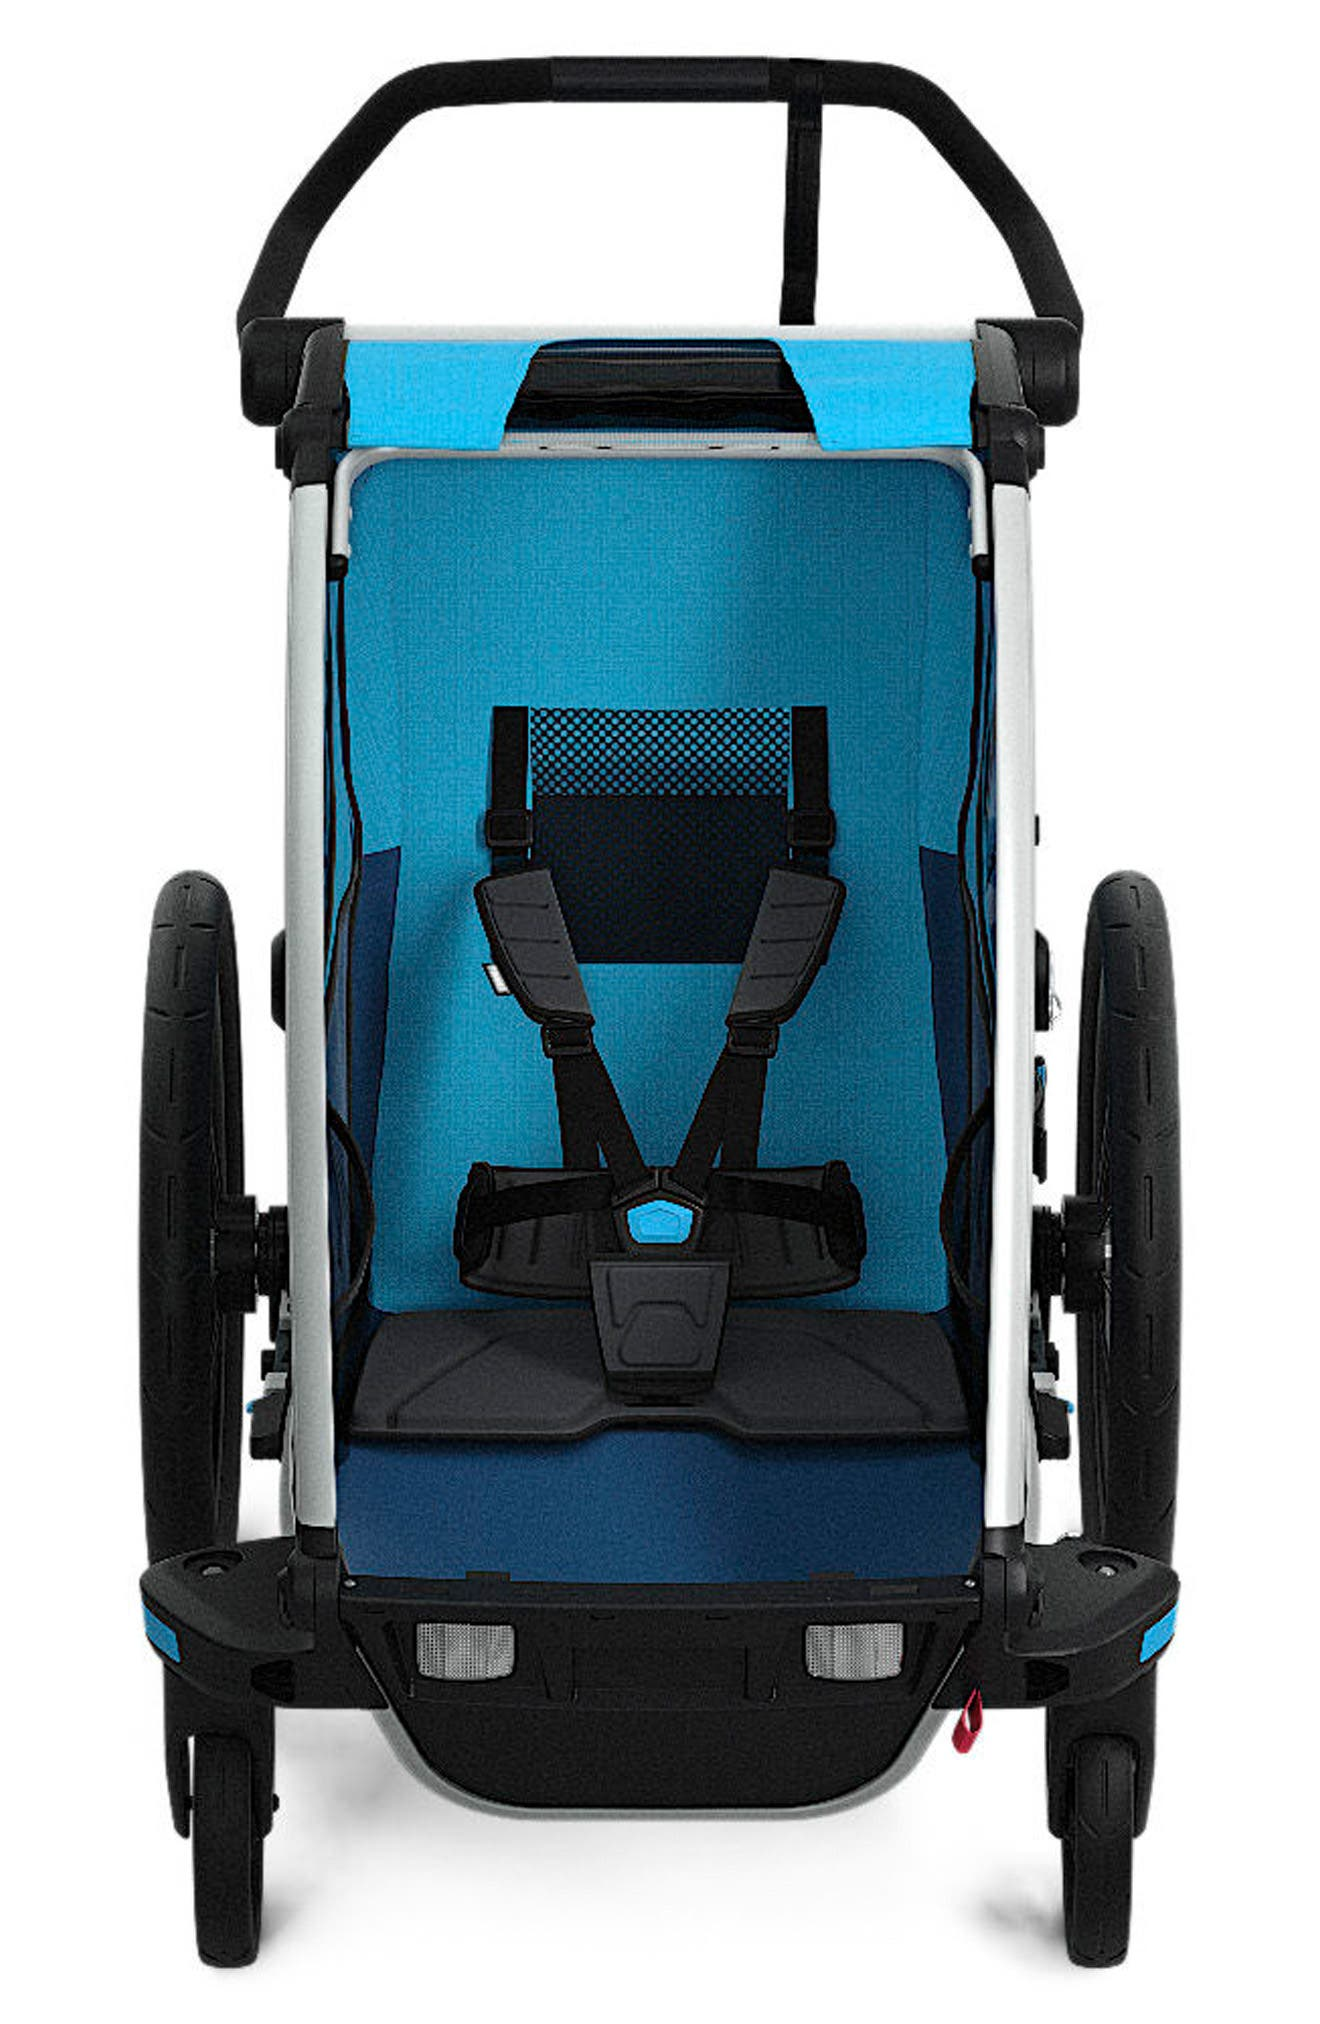 Chariot Cross 1 Multisport Cycle Trailer/Stroller,                             Main thumbnail 1, color,                             THULE BLUE